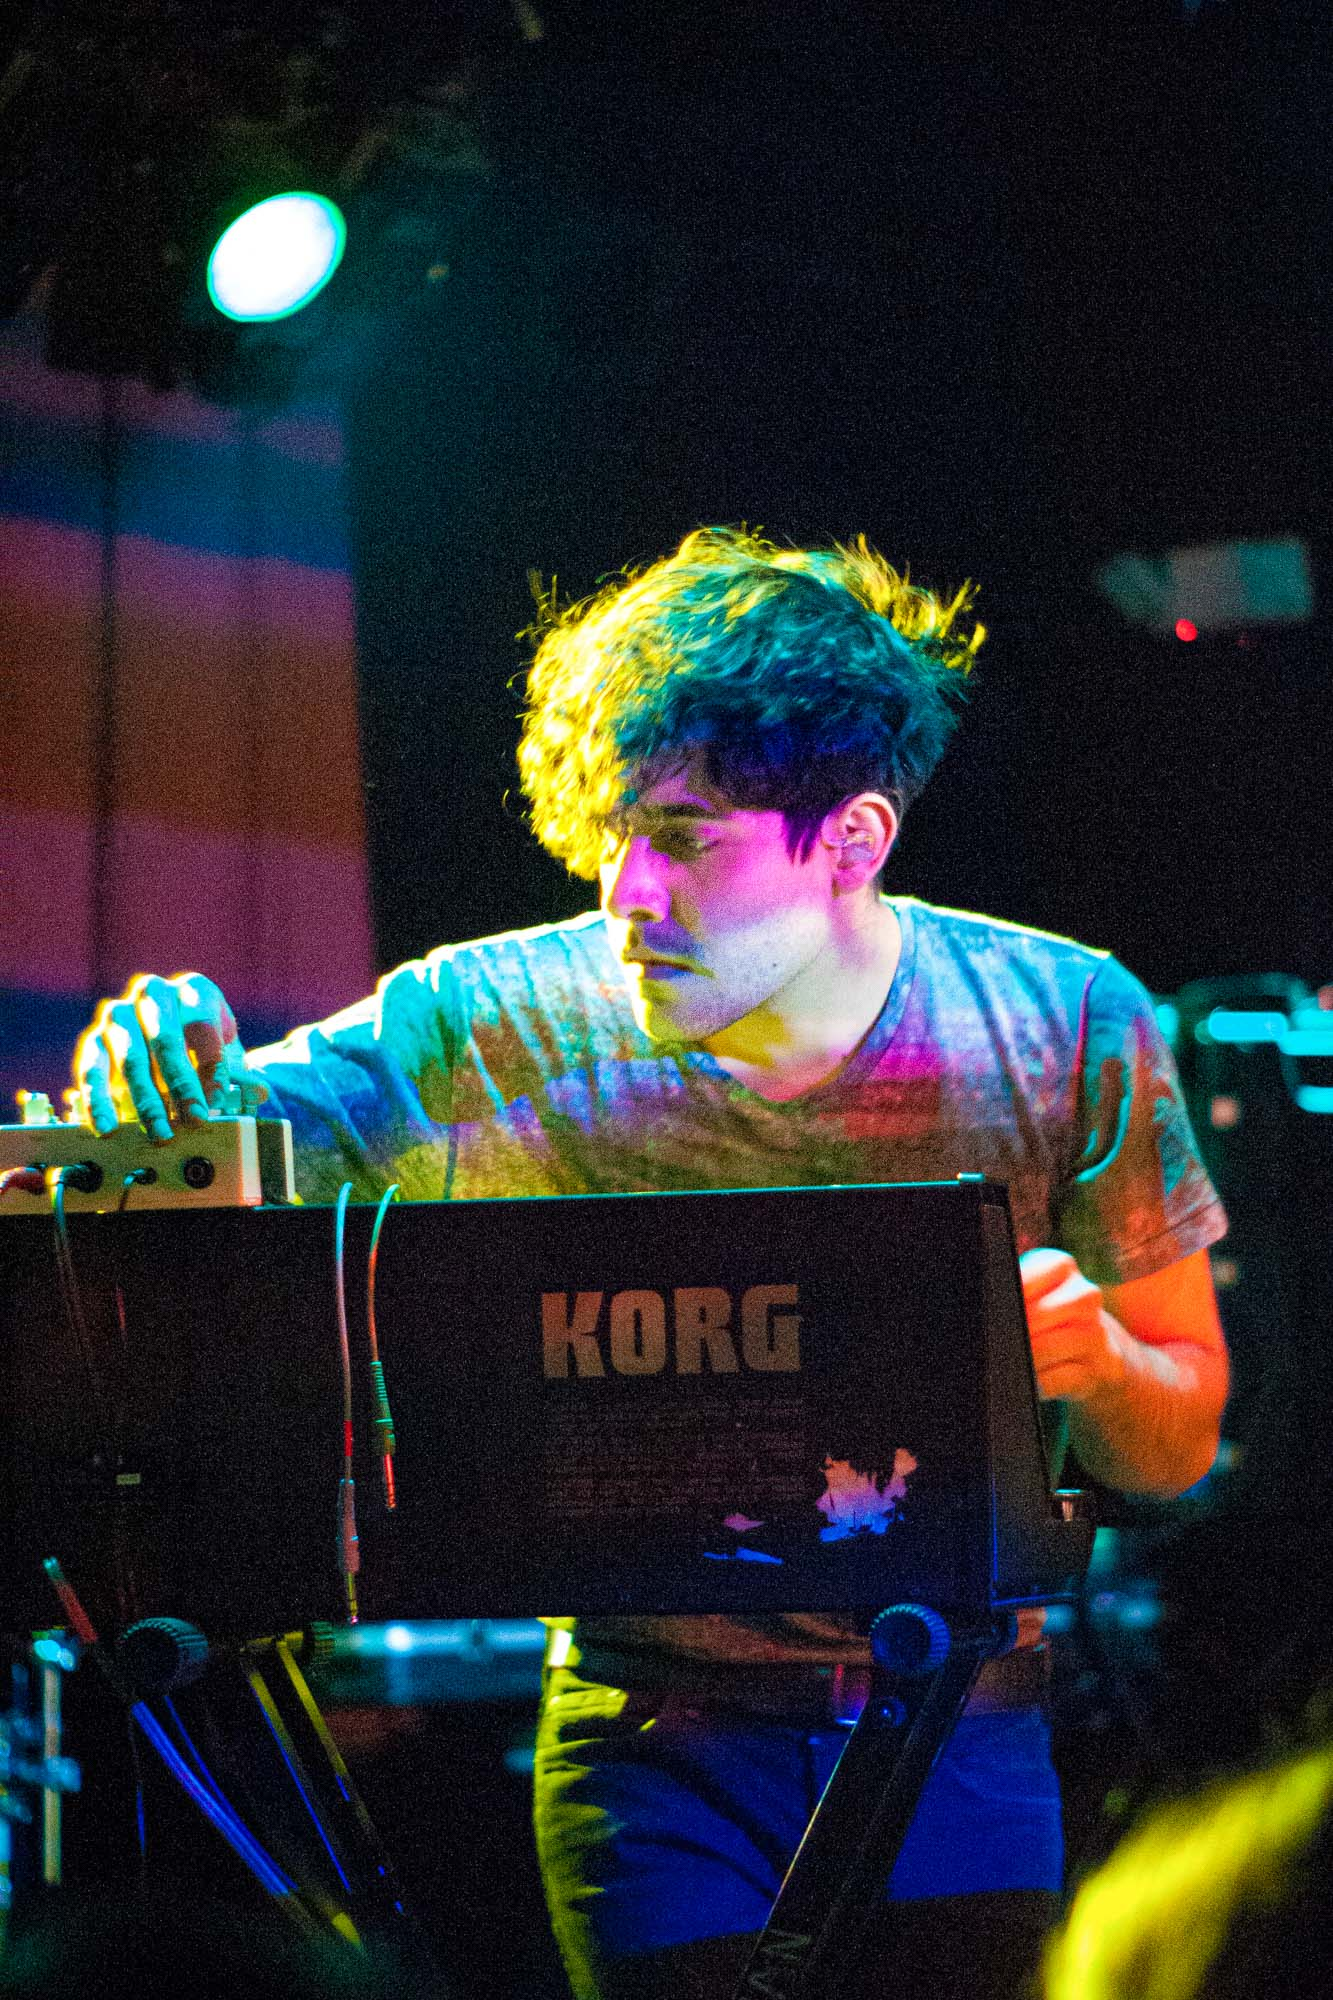 a musician plays a synthesizer at a rock club